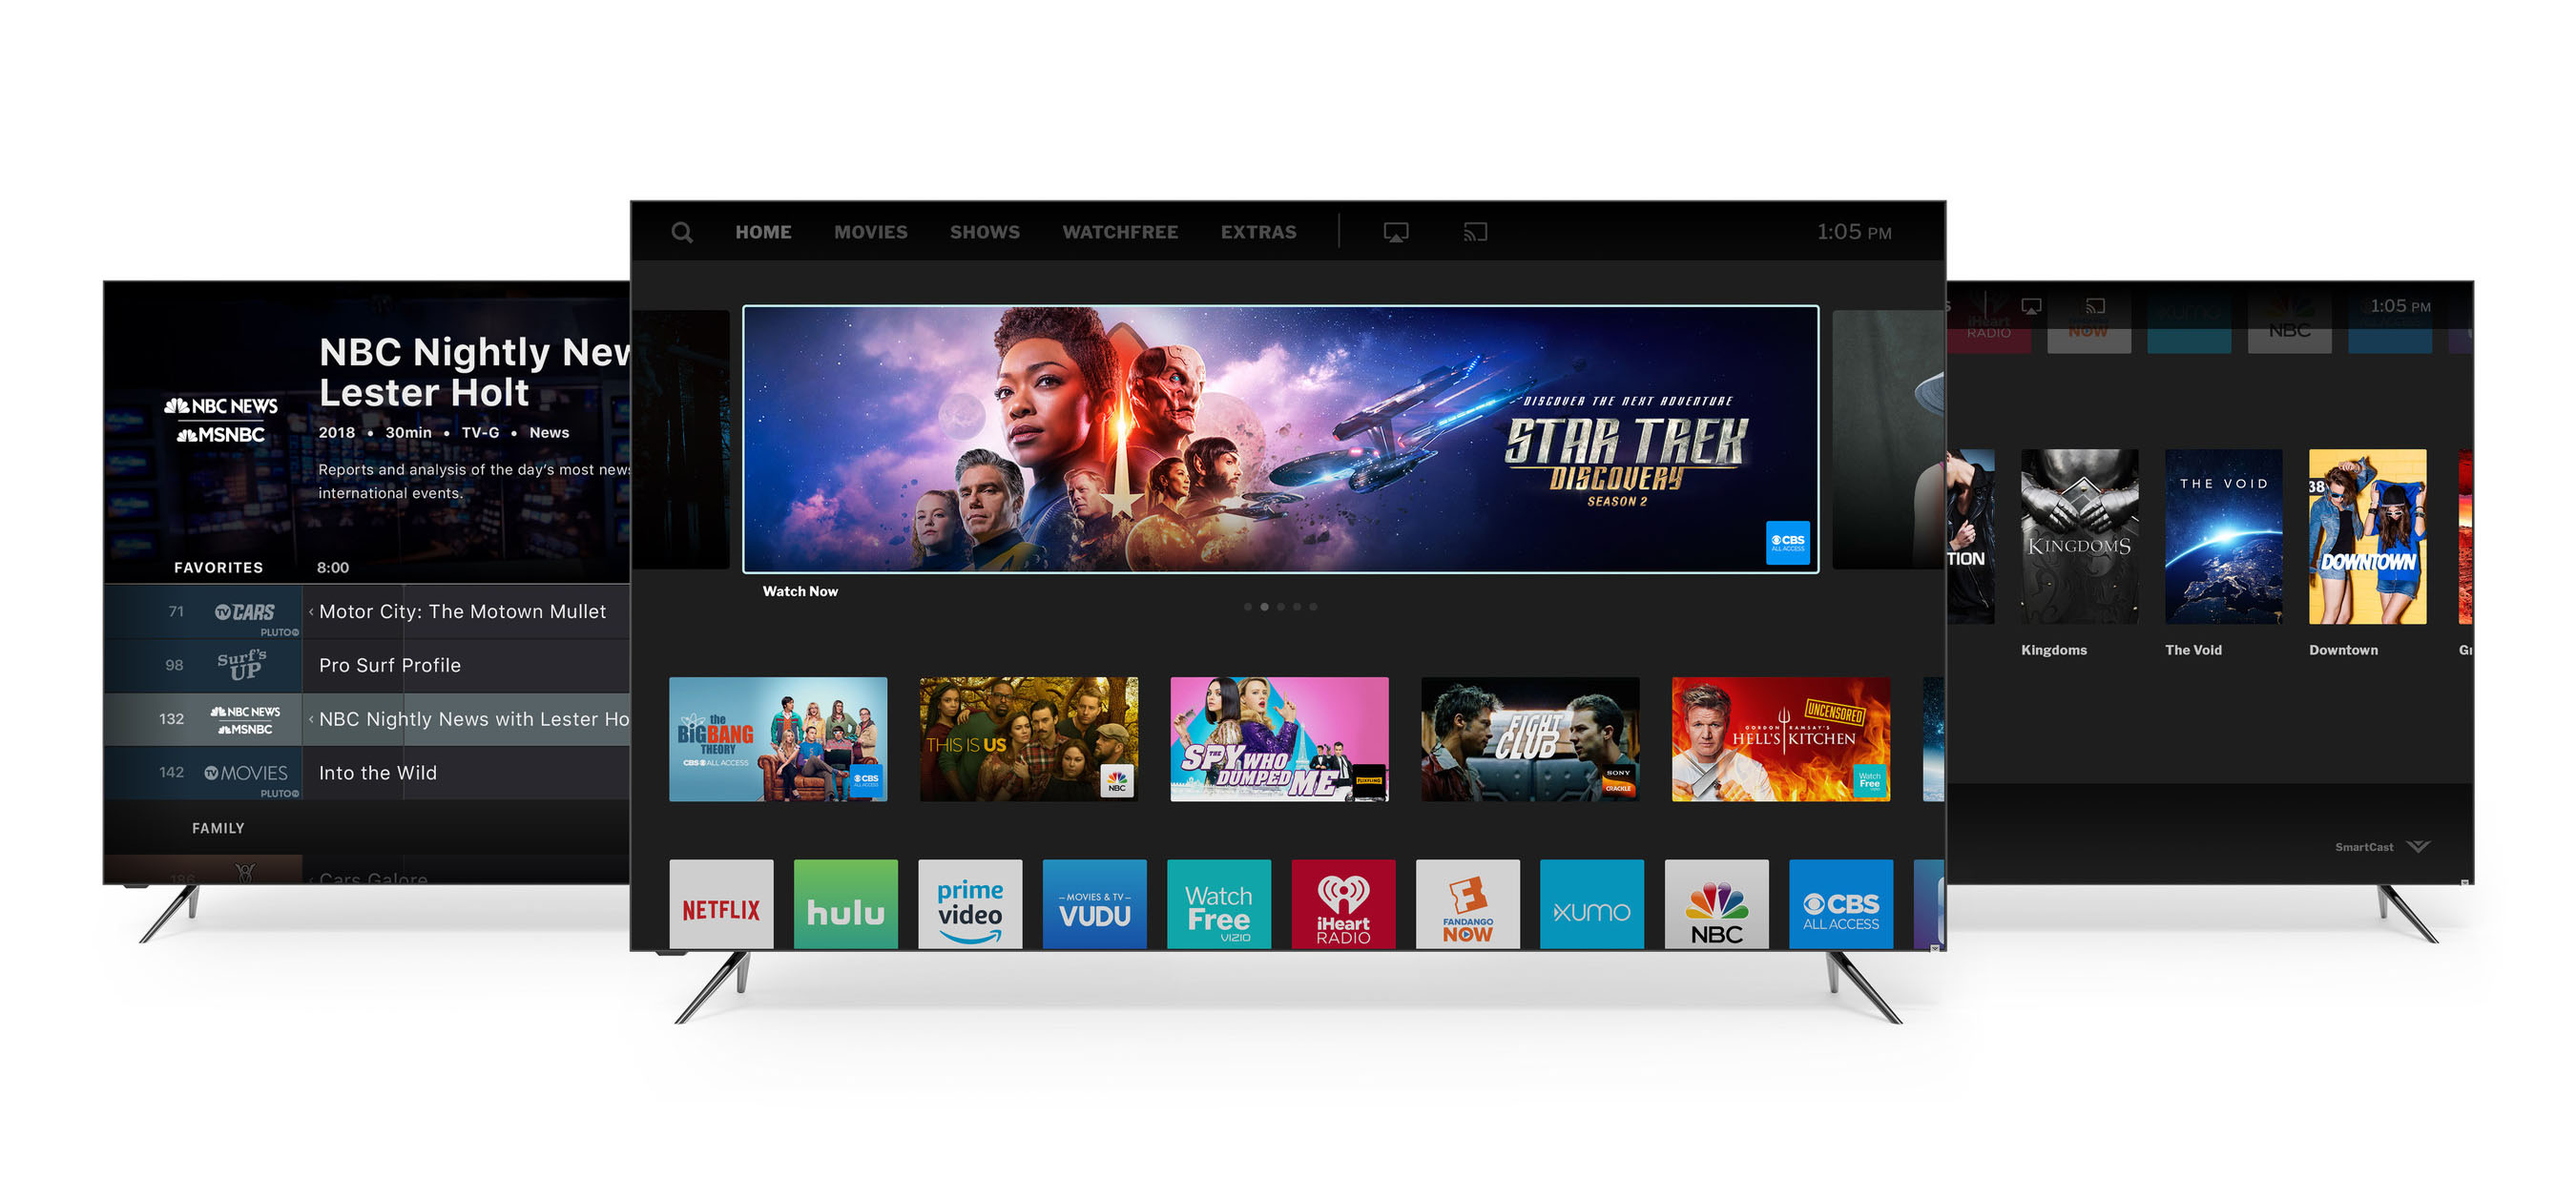 Vizio adds Hulu Live TV, more free channels to SmartCast 3 0